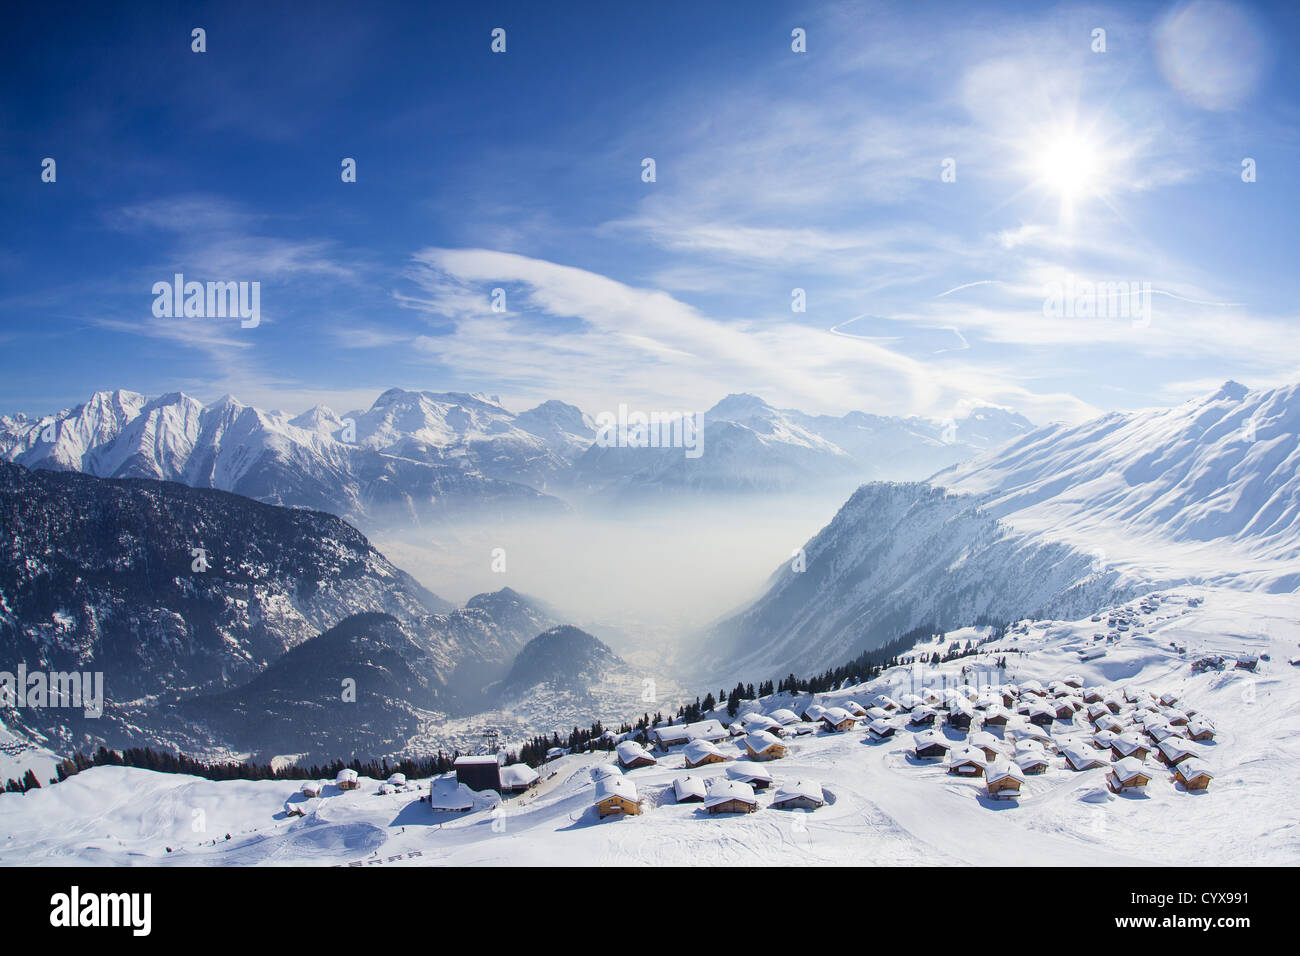 Aerial view over the Swiss village of Bel Alp and the high mountains of the Wallis (Valais) region - Stock Image